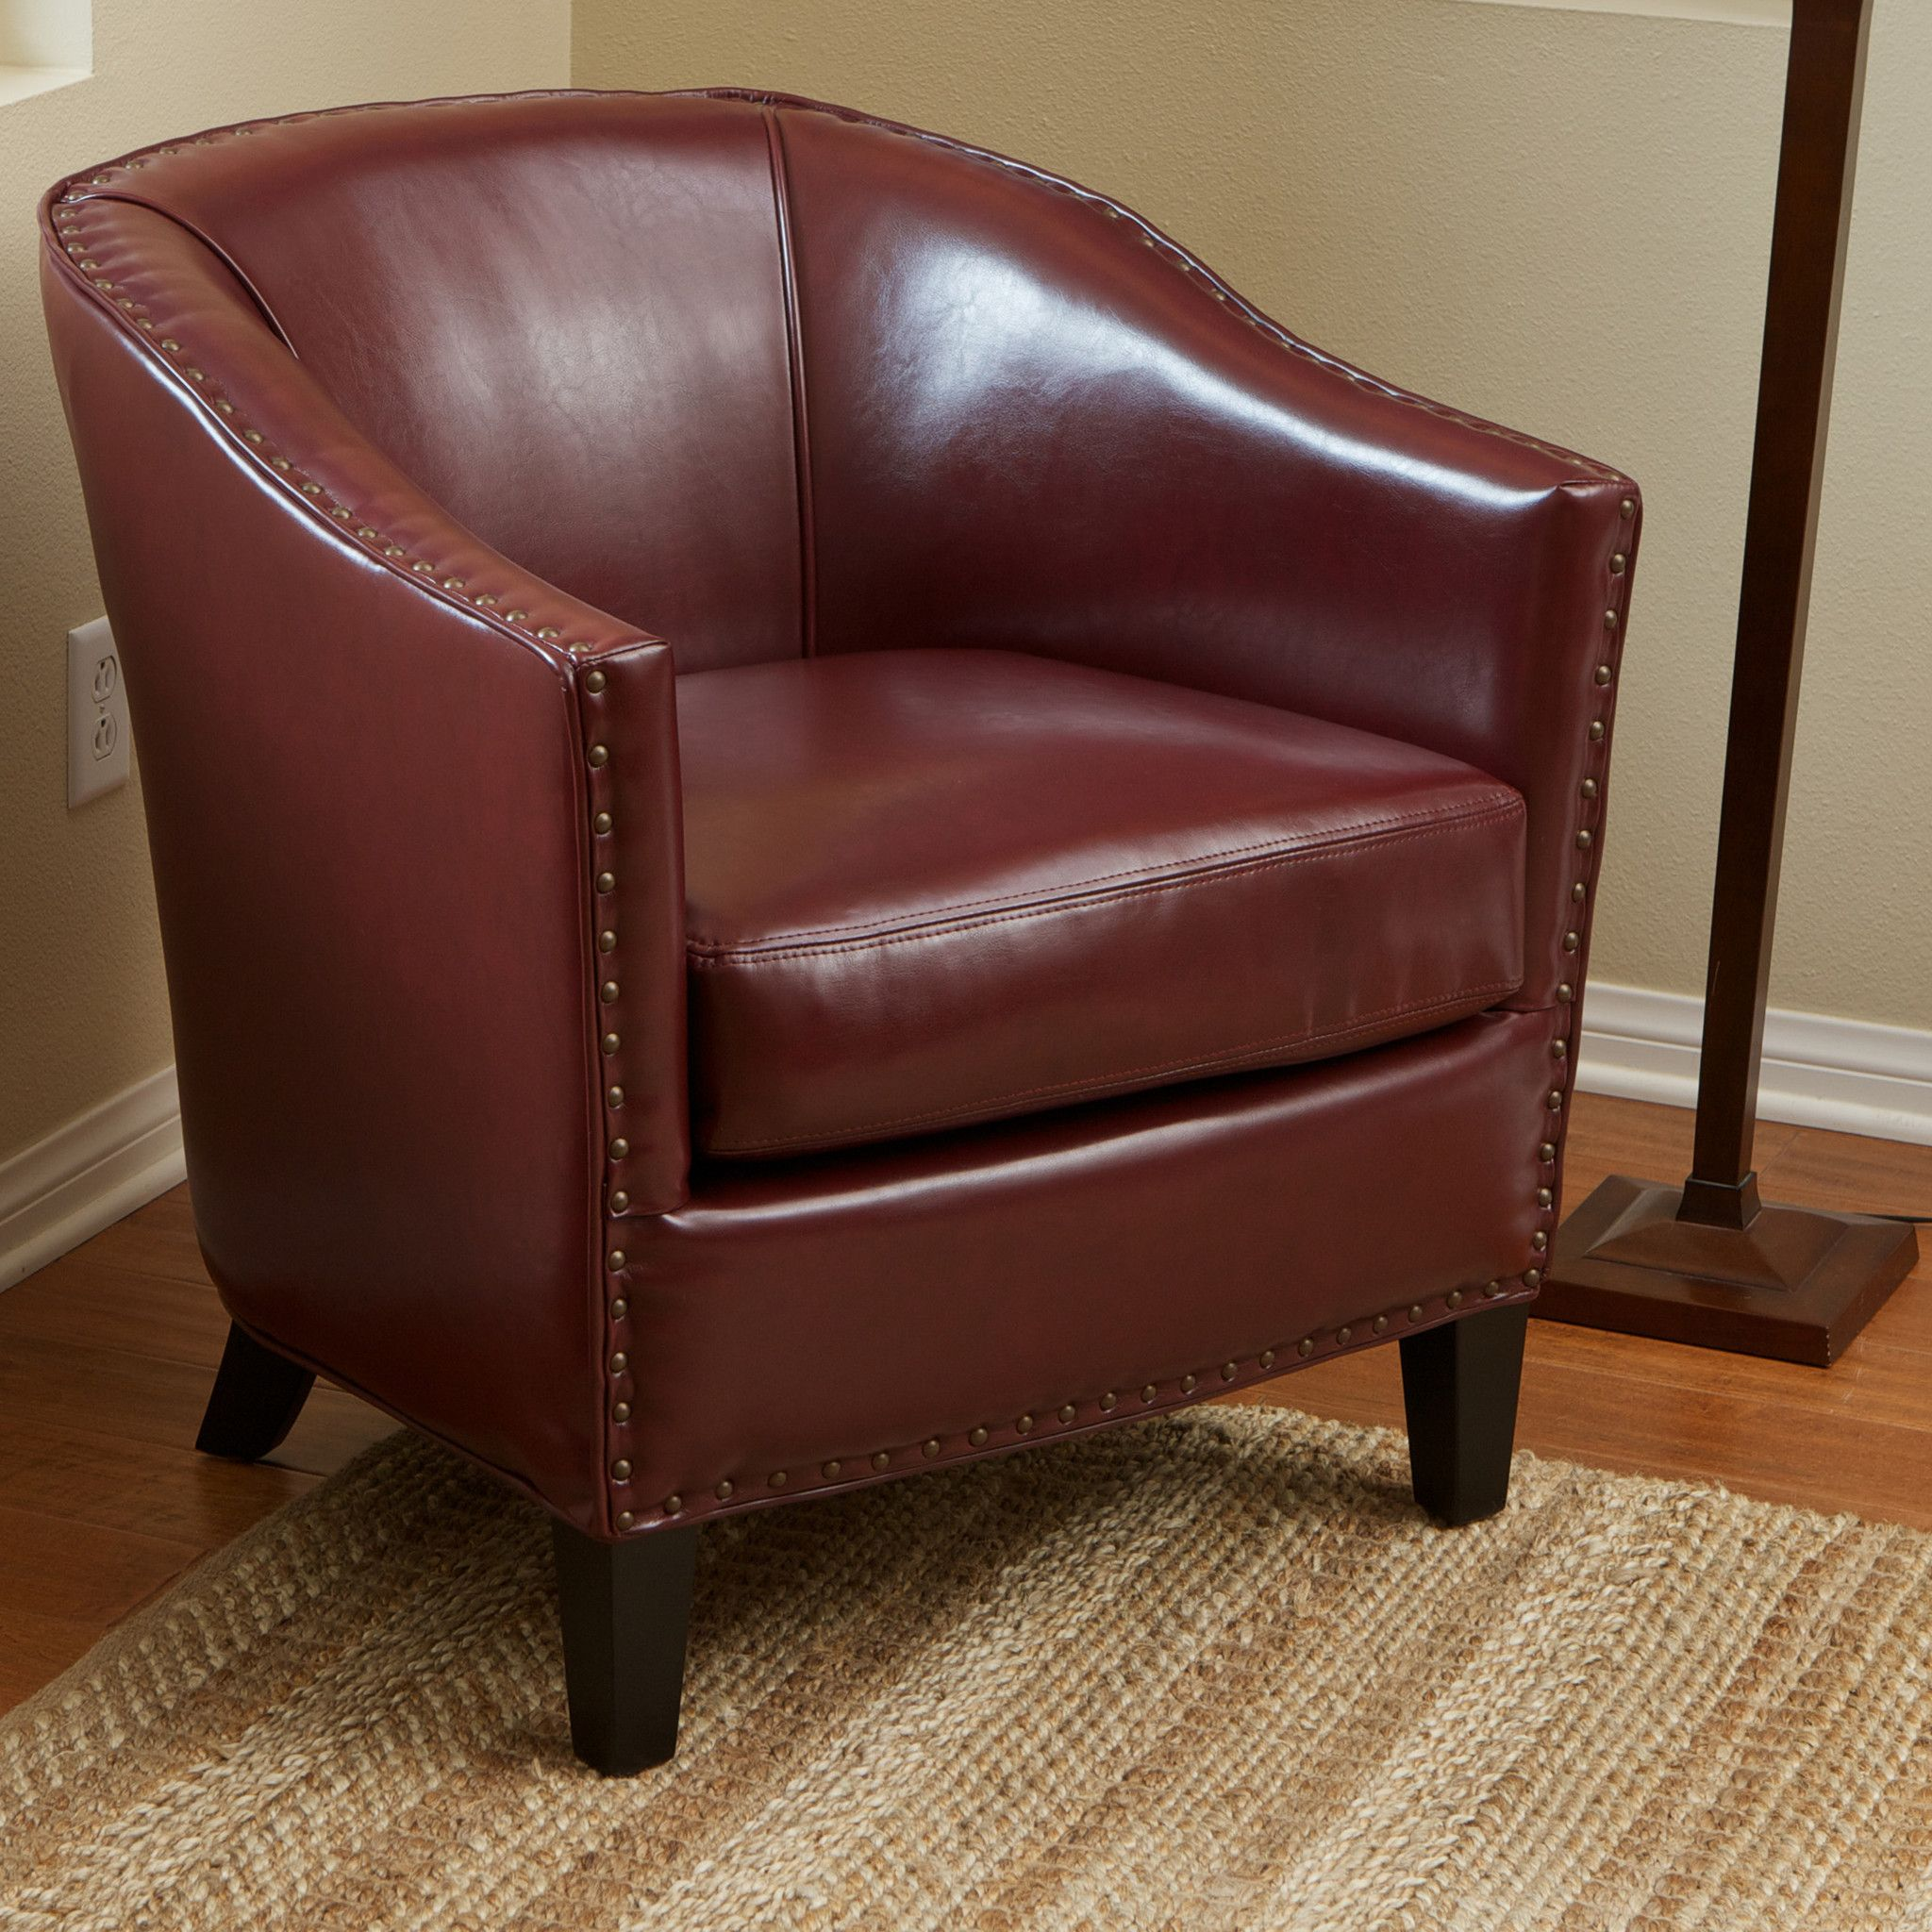 Carlton Red Leather Club Chair